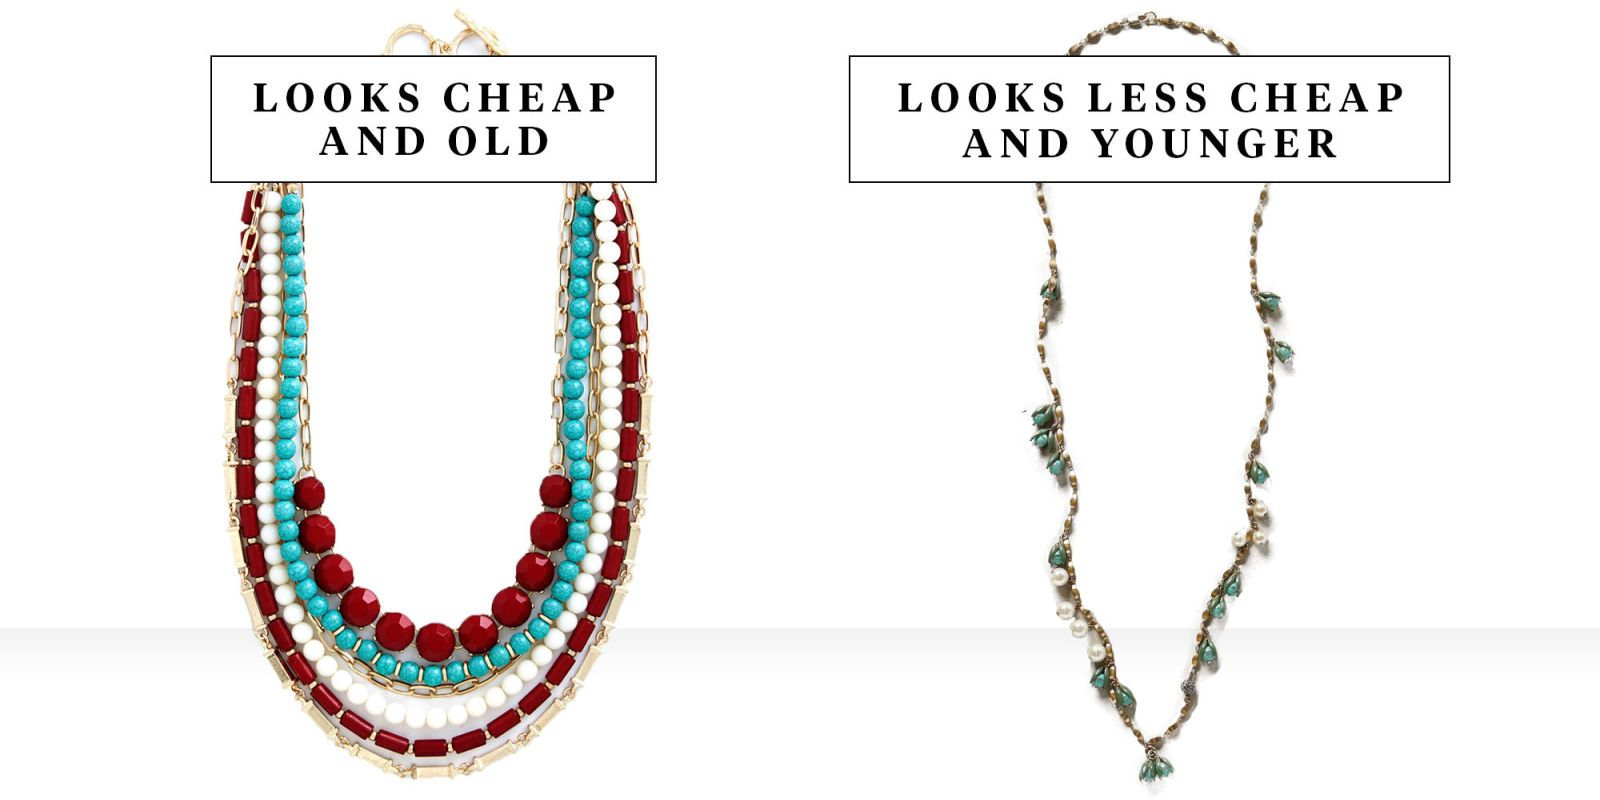 Necklace chain style with dangling transparent beads colour choice